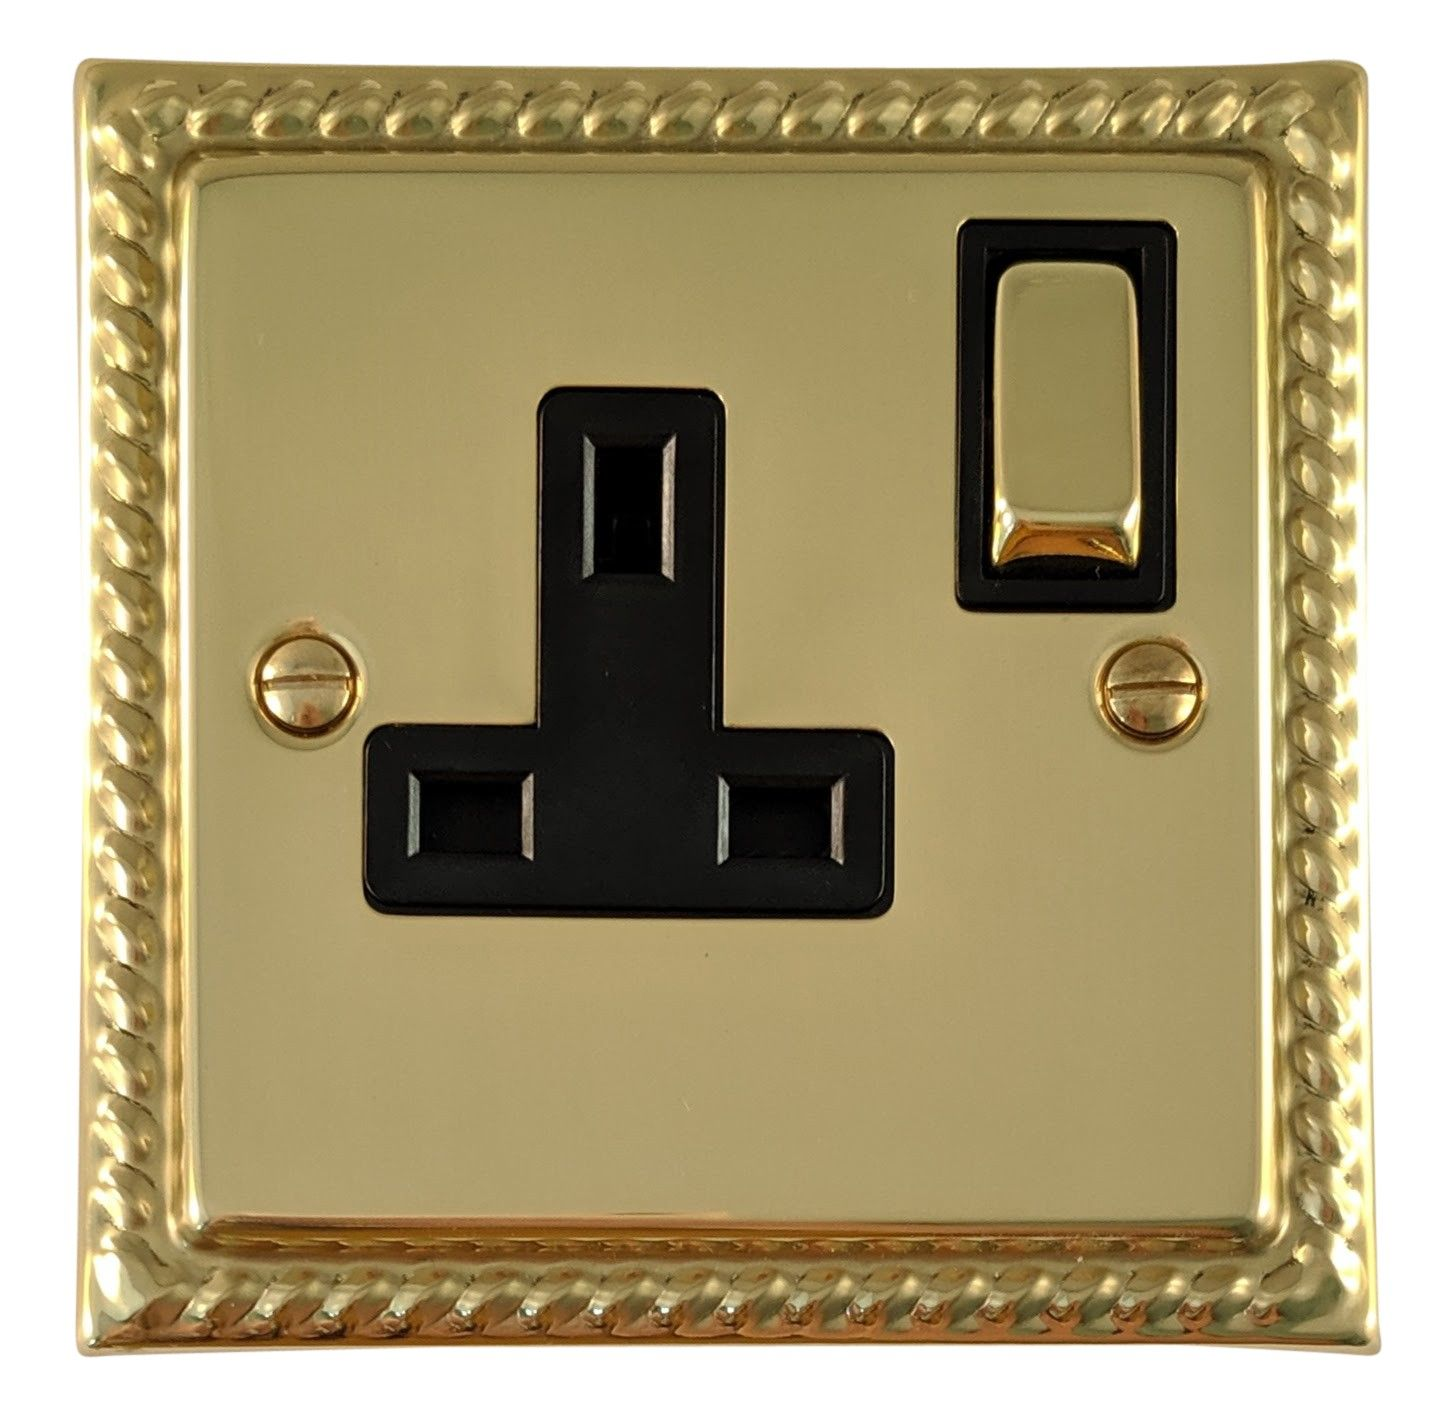 G&H MB309 Monarch Roped Polished Brass 1 Gang Single 13A Switched Plug Socket